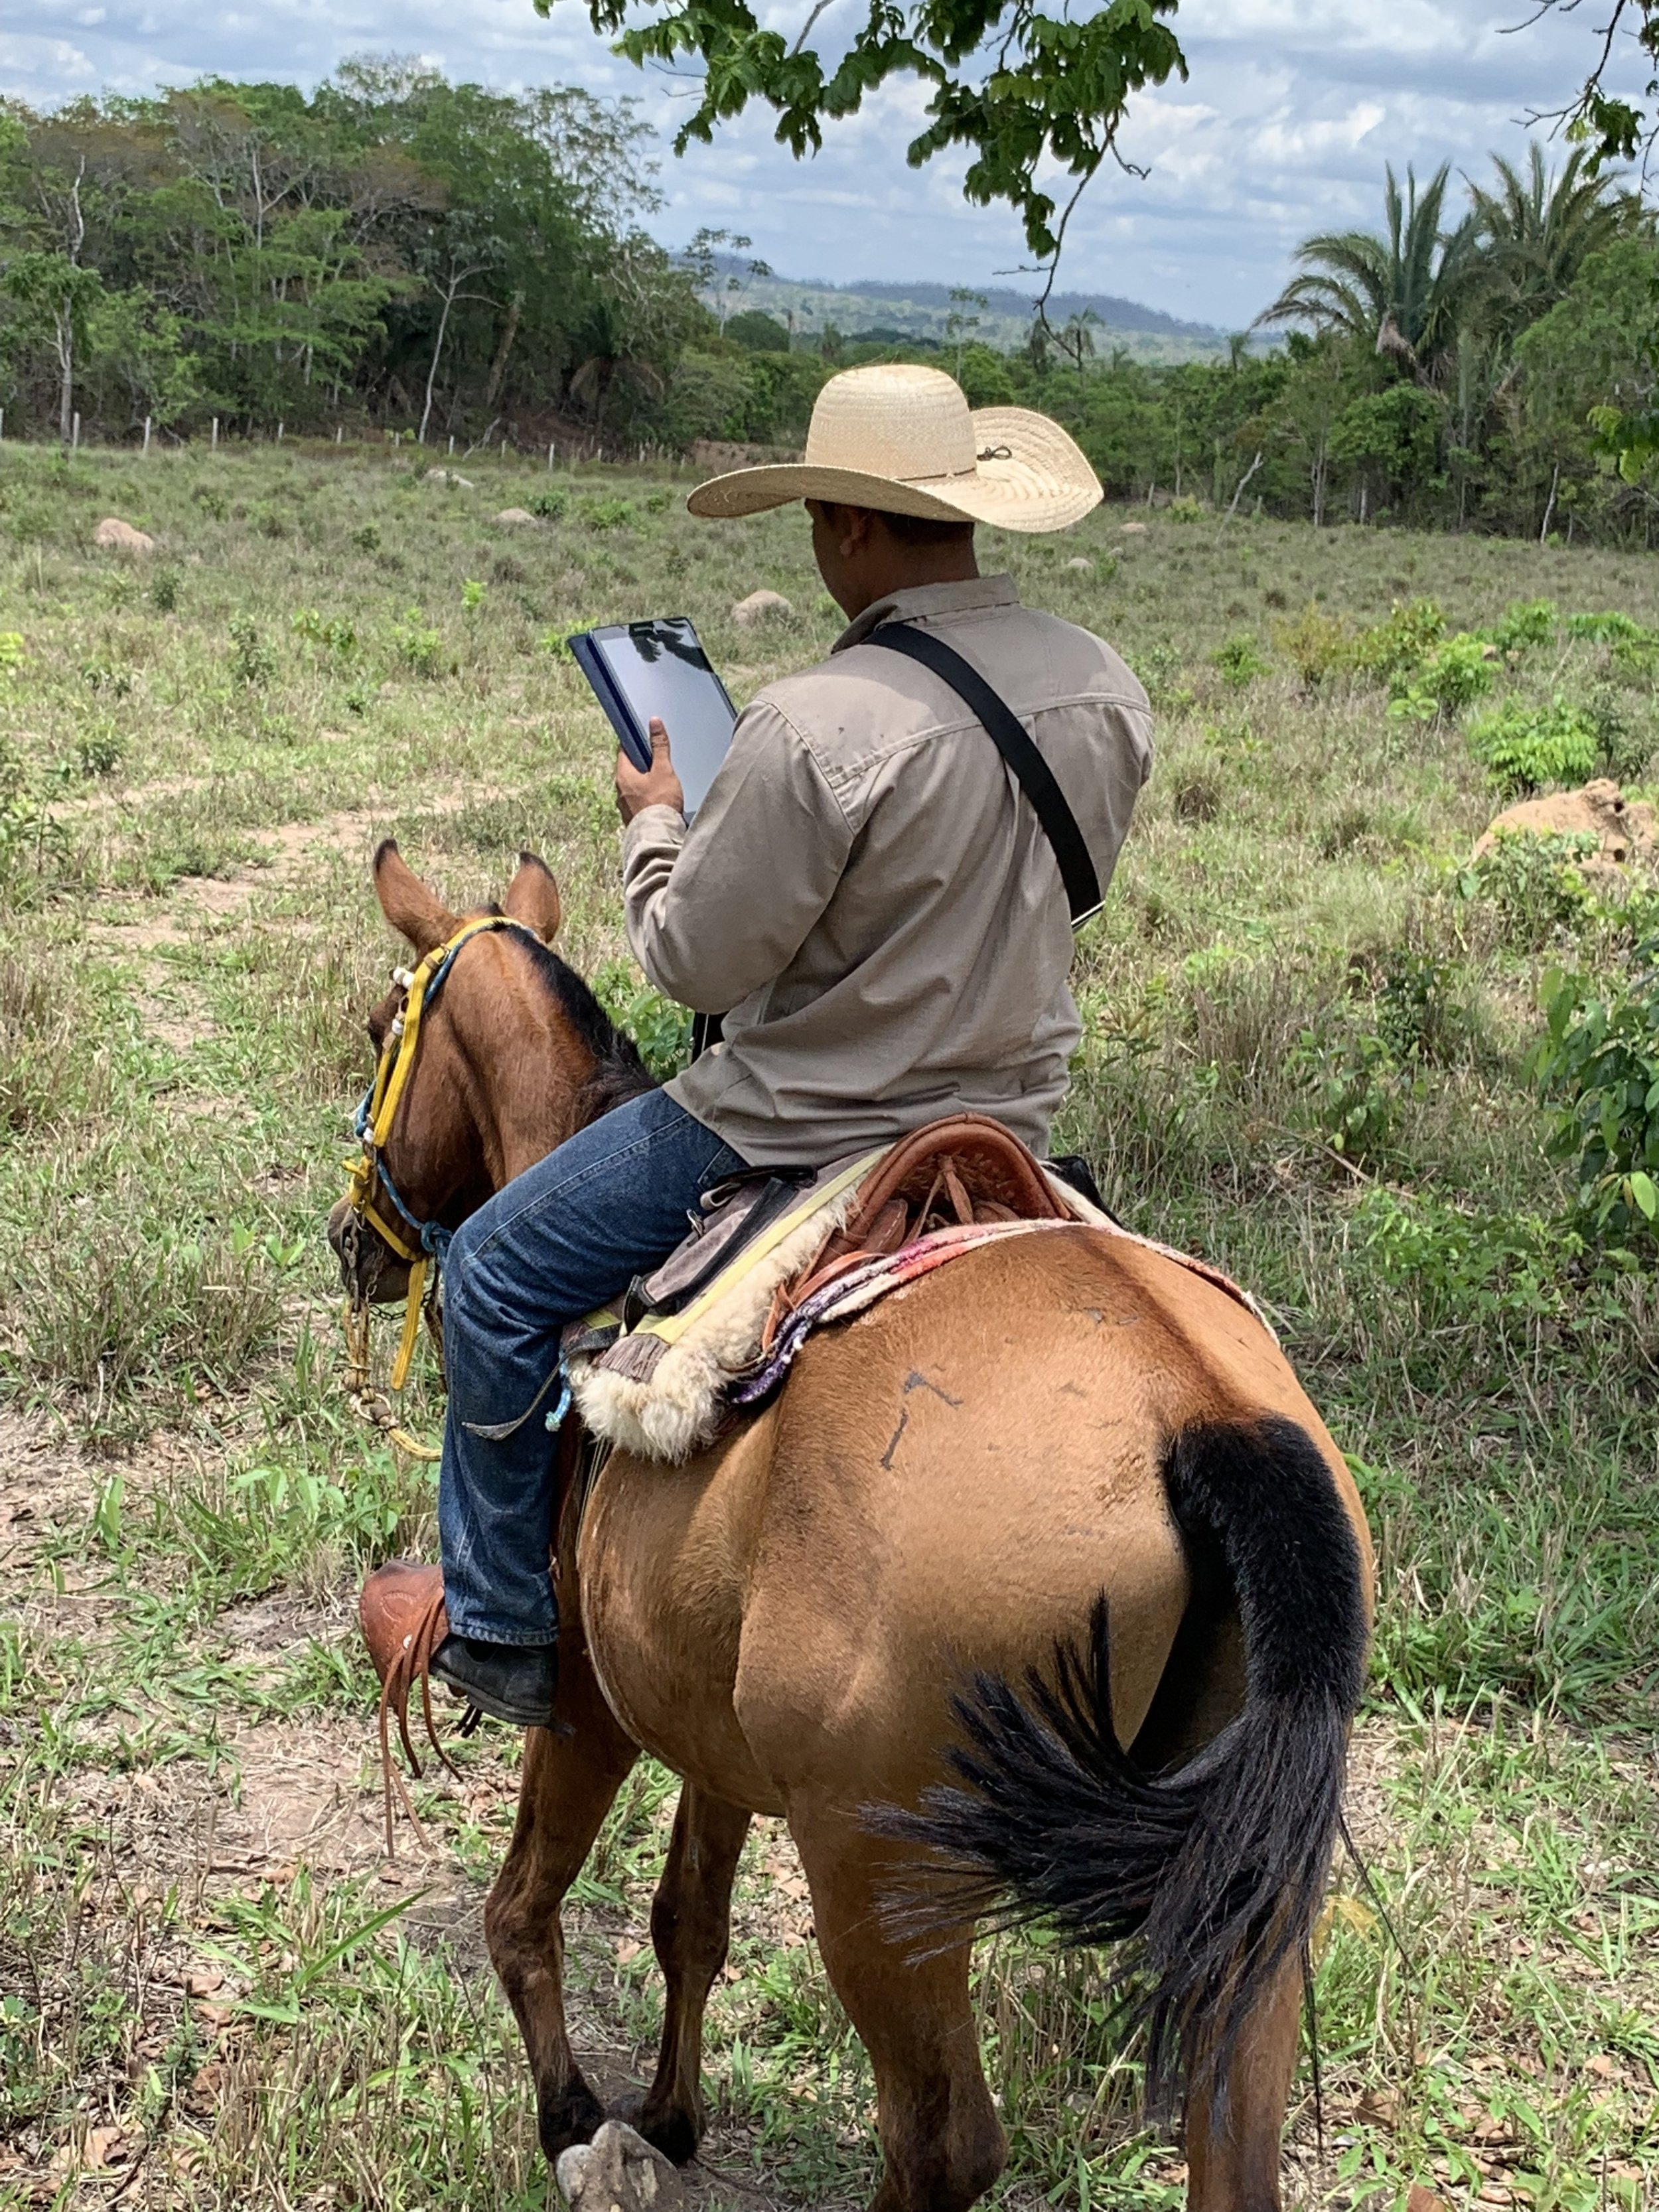 Digital ranching - With a team of experienced ranchers, professional management and best-in-class digital tools - La Pradera is setting the standard.